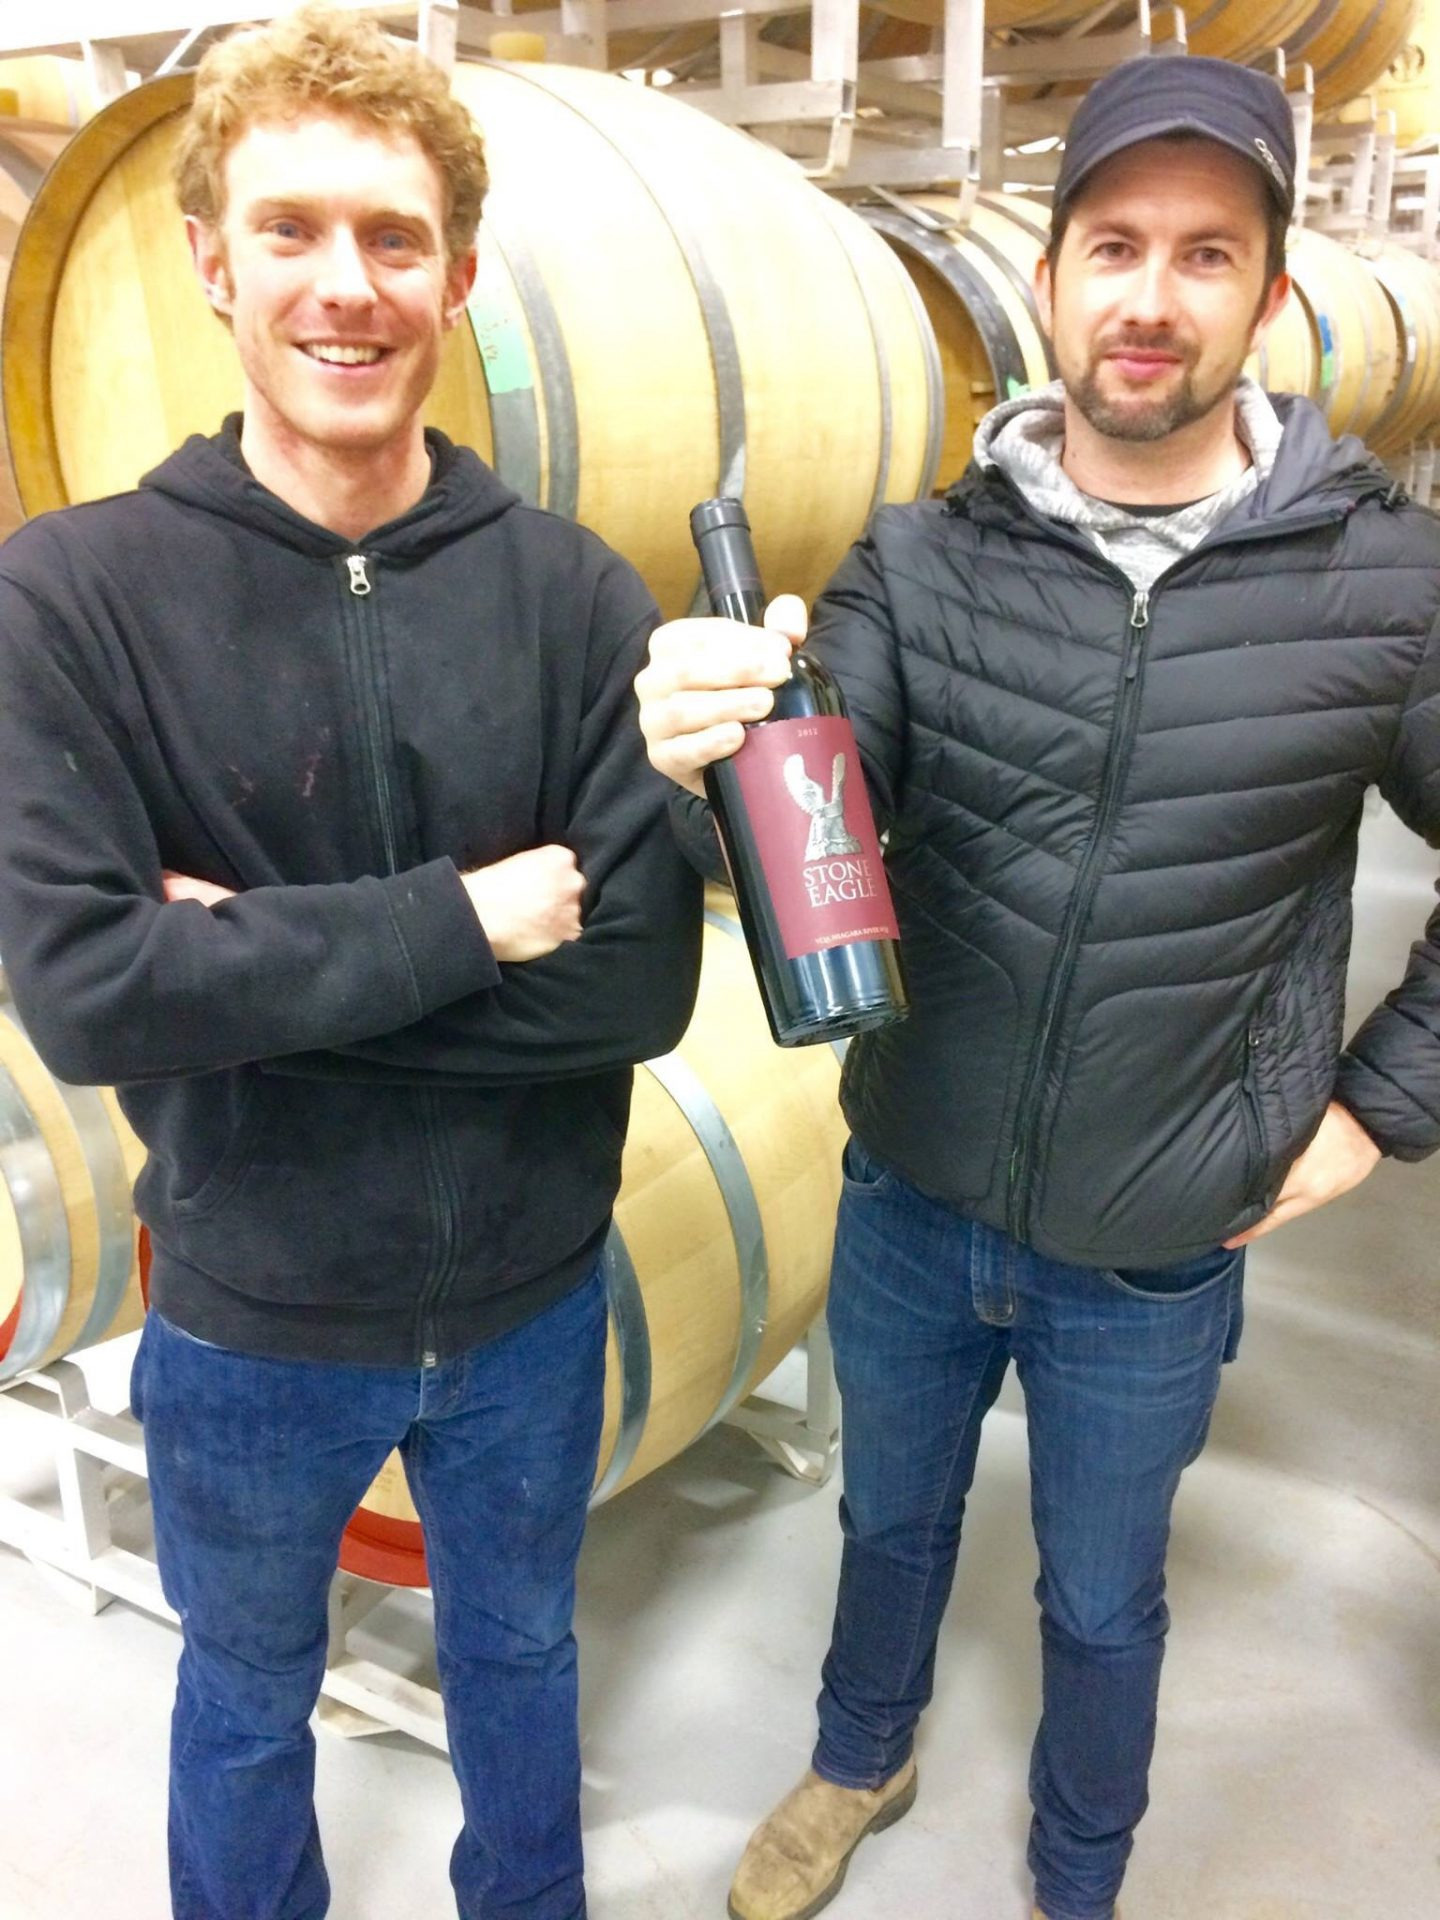 Winemaker Adam Pearce and Assistant Winemaker Trevor Ingham cradle a hefty bottle of 2012 Two Sisters Stone Eagle, Niagara River VQA.